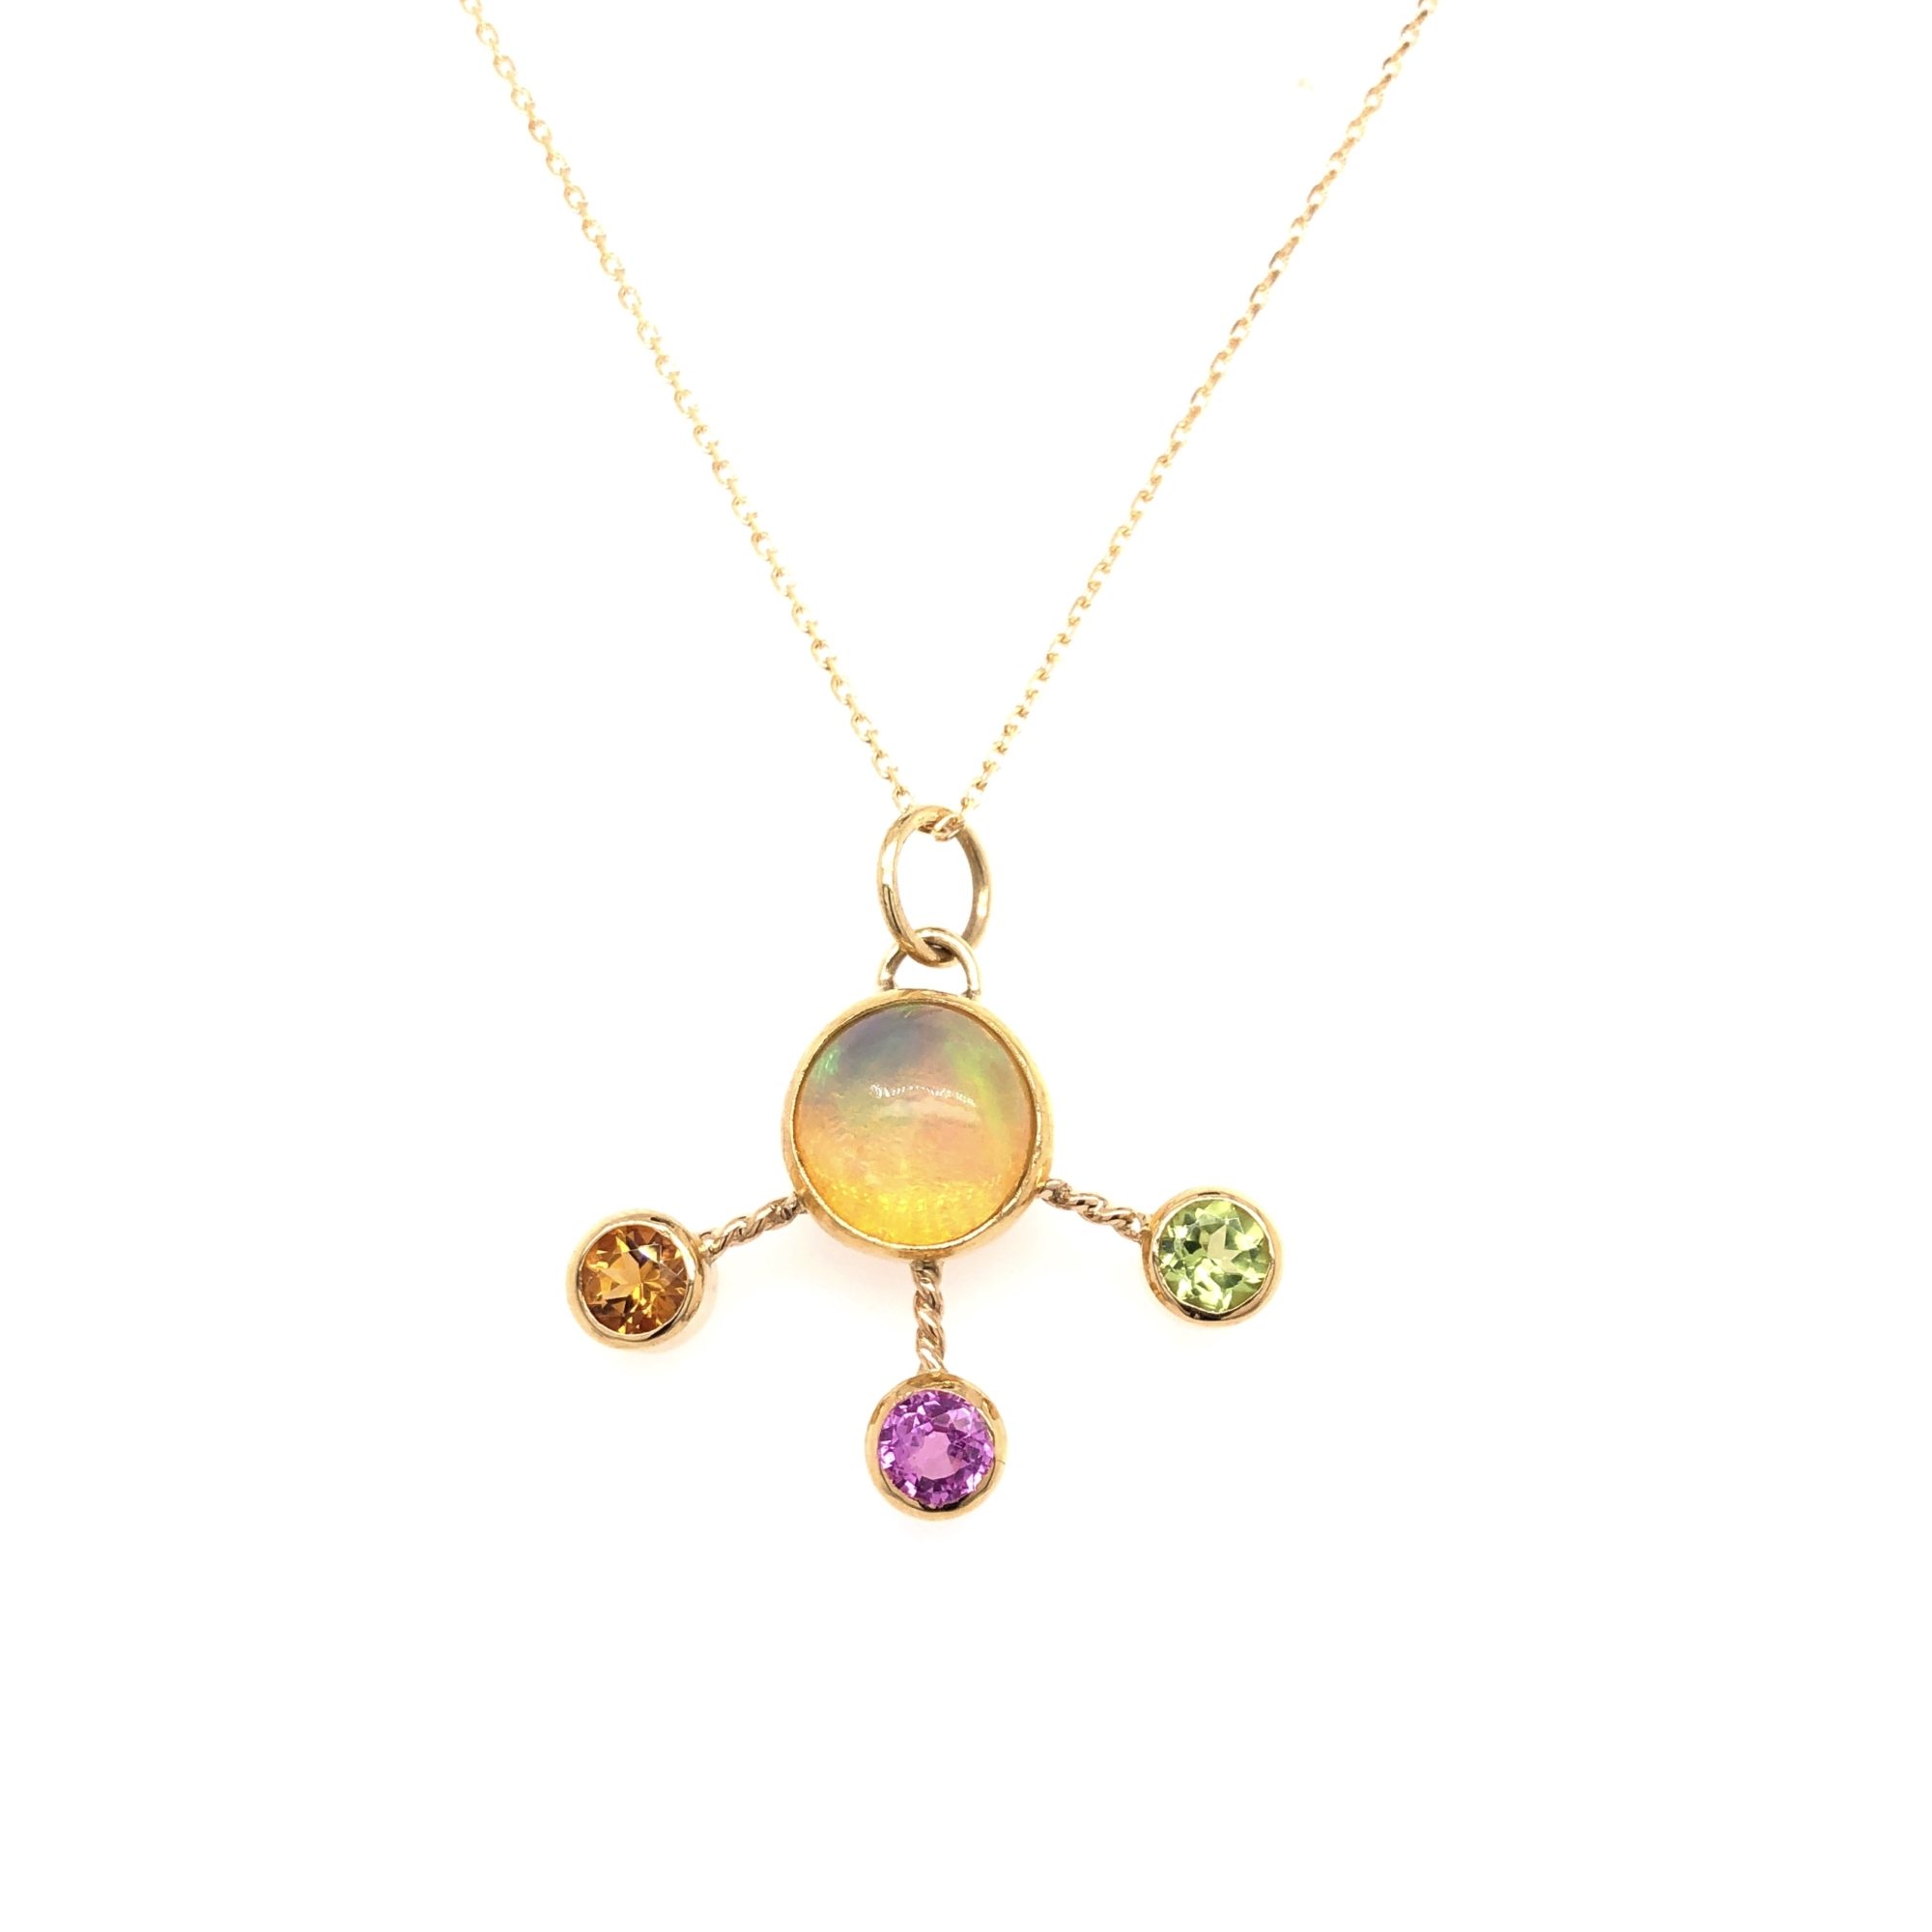 Jewel Lab 18K Yellow Gold   Opal Gold Necklace with Stones IMPER CHEM PEND #2